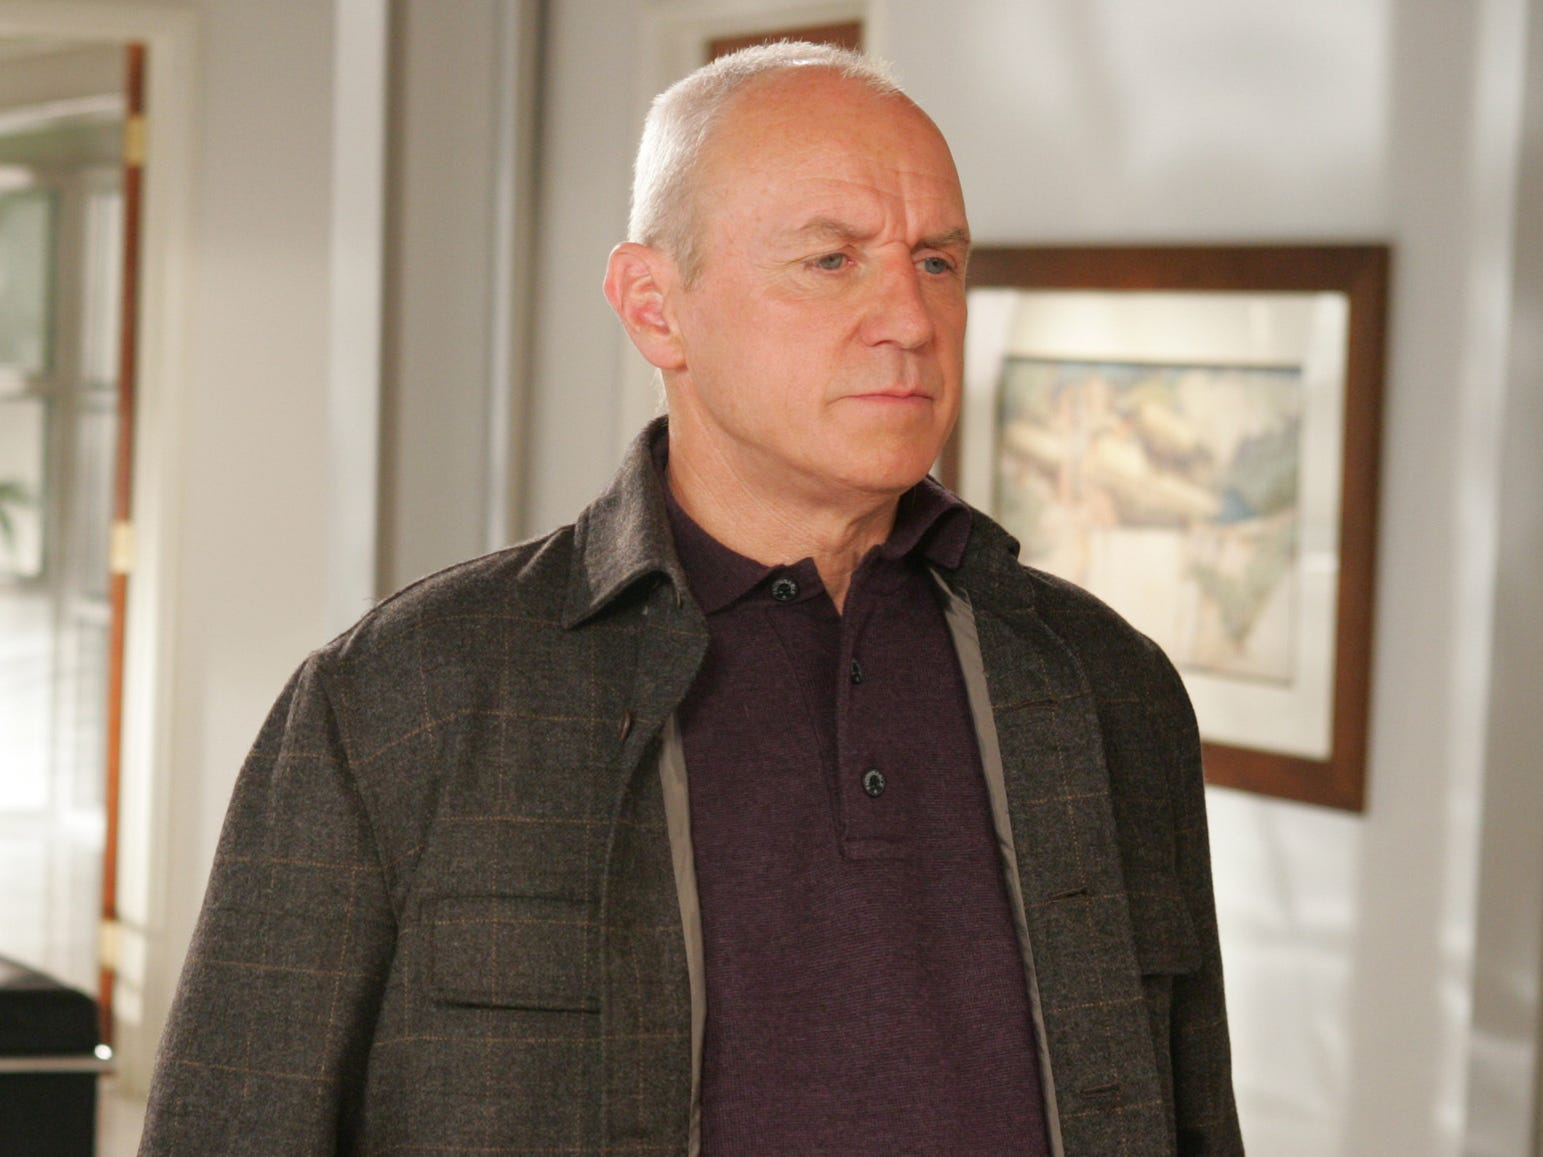 Alan Dale was Caleb Nichol, a real estate mogul and the father of Kirsten Cohen.